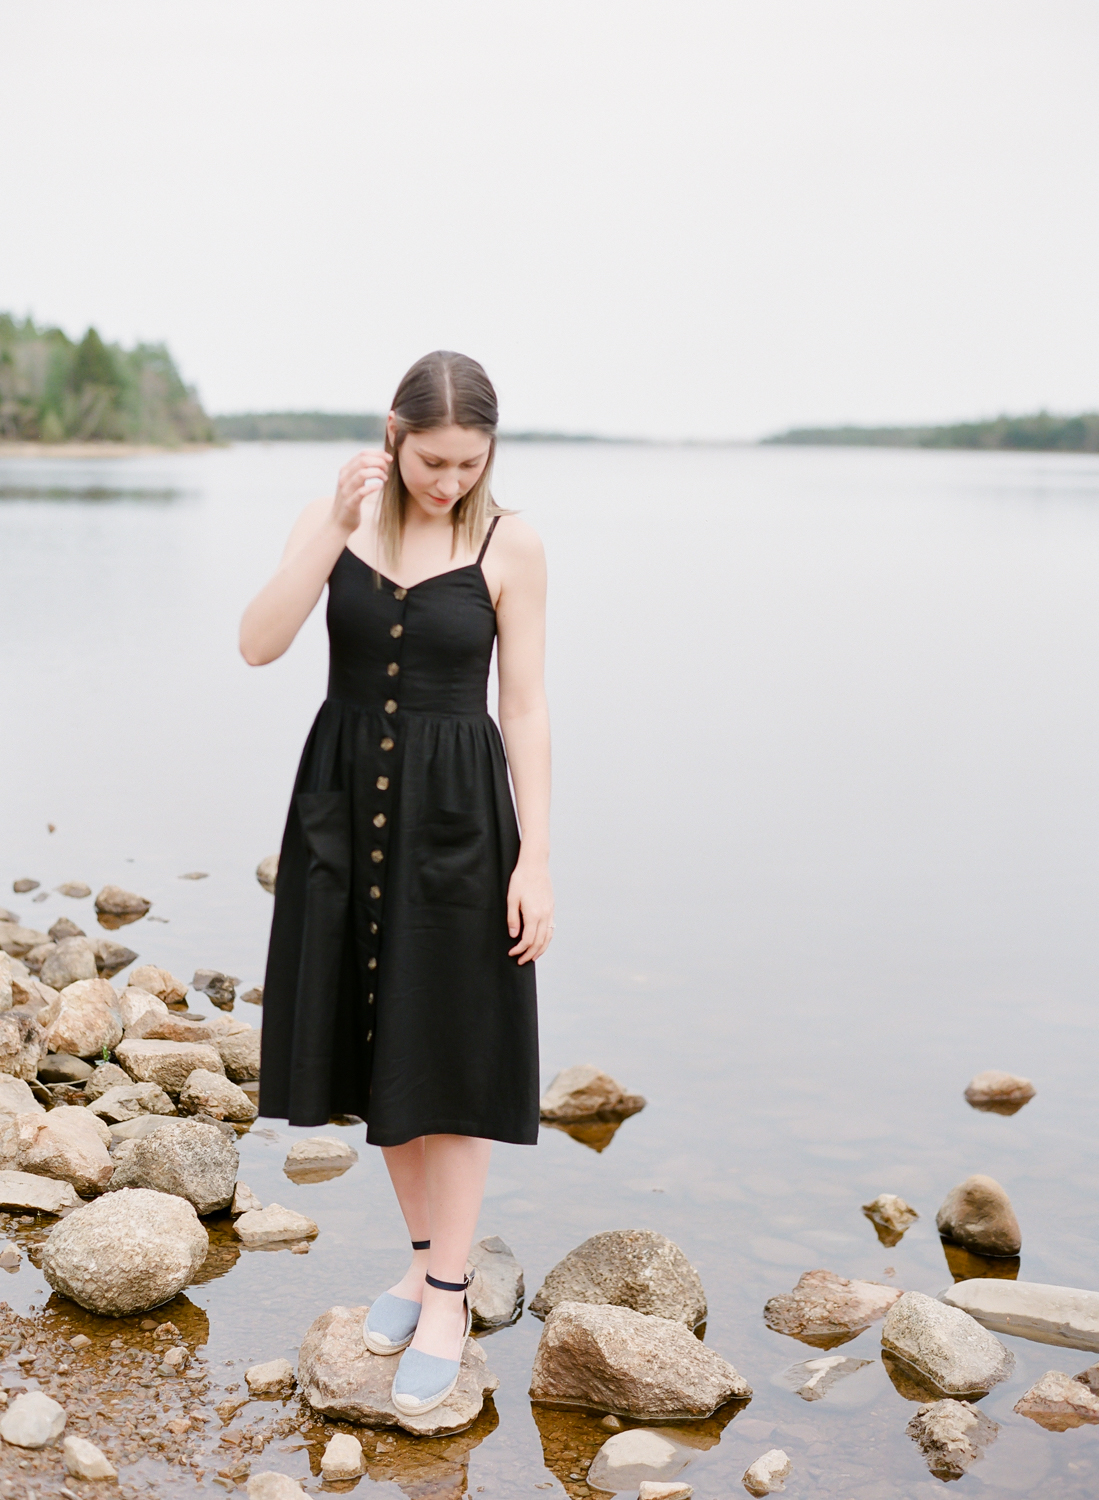 Jacqueline Anne Photography - Maddie and Ryan - Long Lake Engagement Session in Halifax-60.jpg